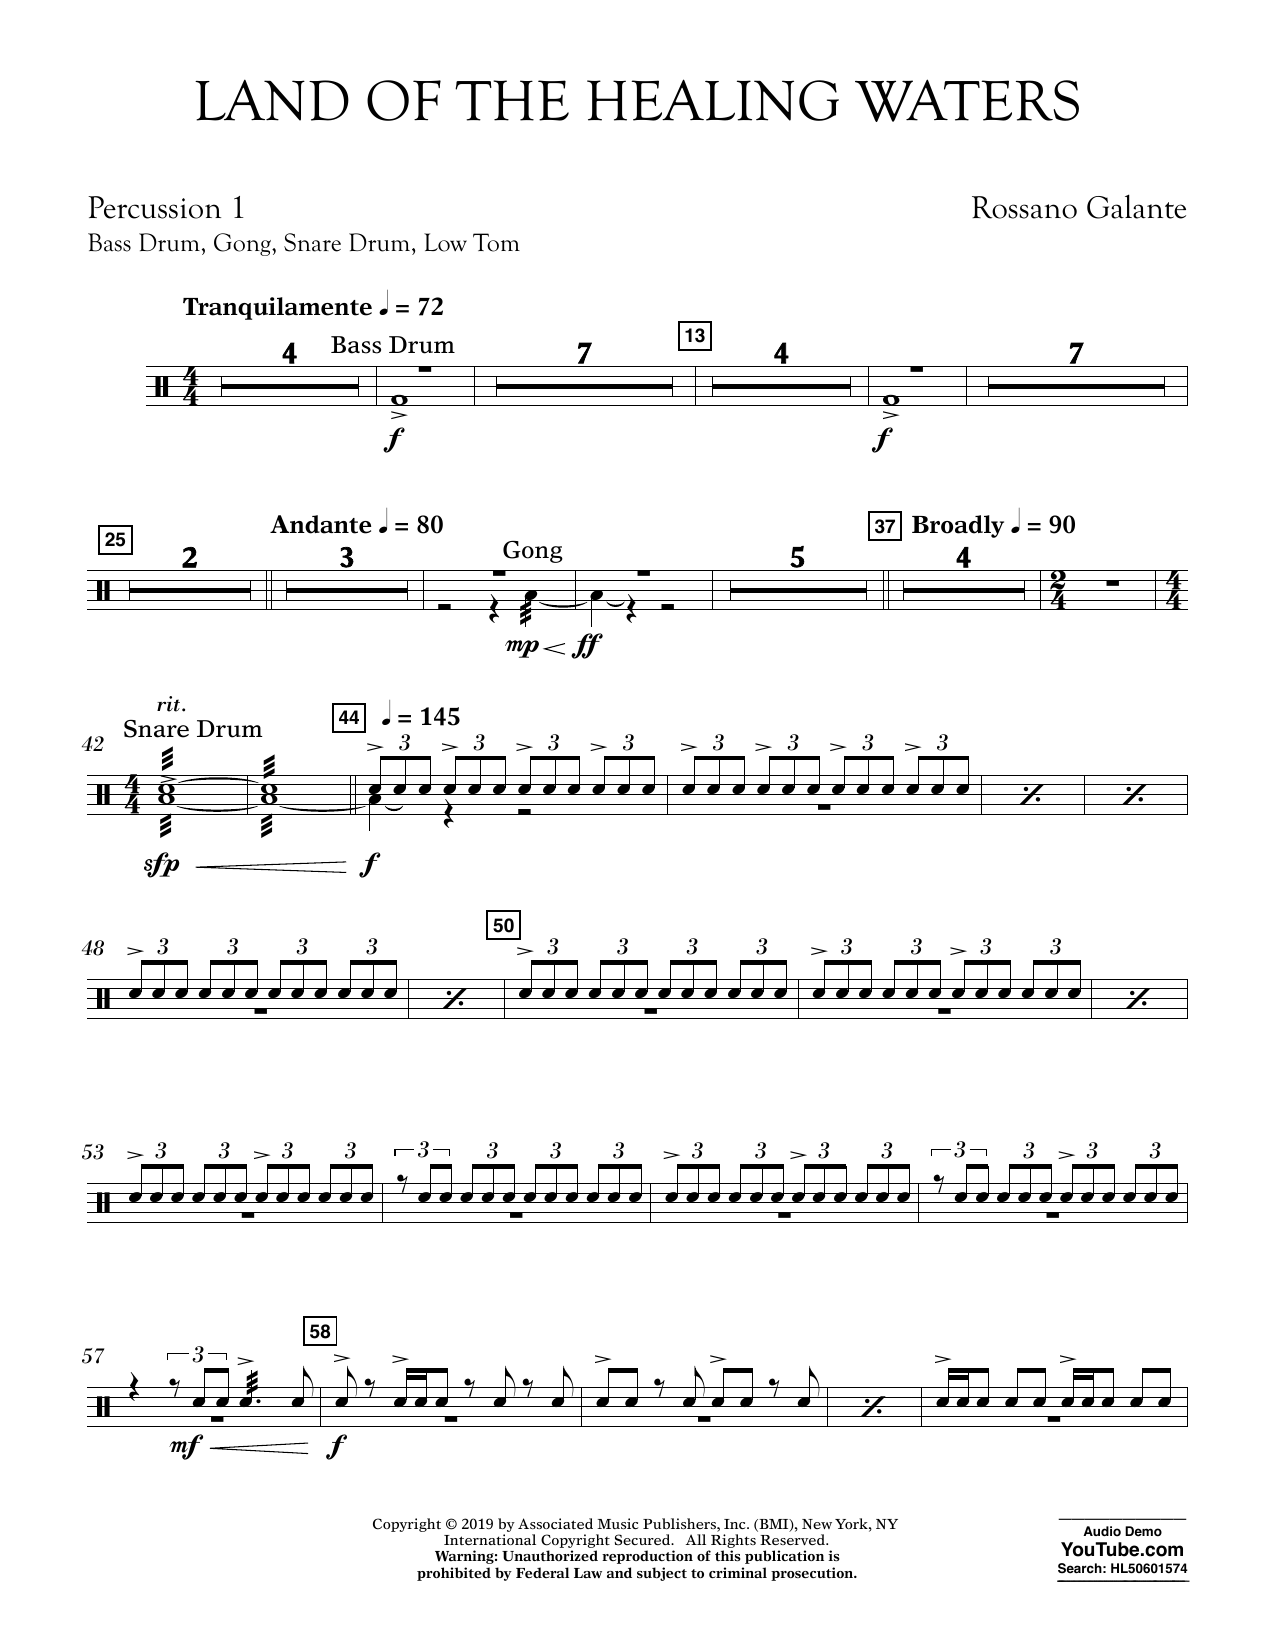 Rossano Galante Land of the Healing Waters - Percussion 1 sheet music preview music notes and score for Concert Band including 2 page(s)